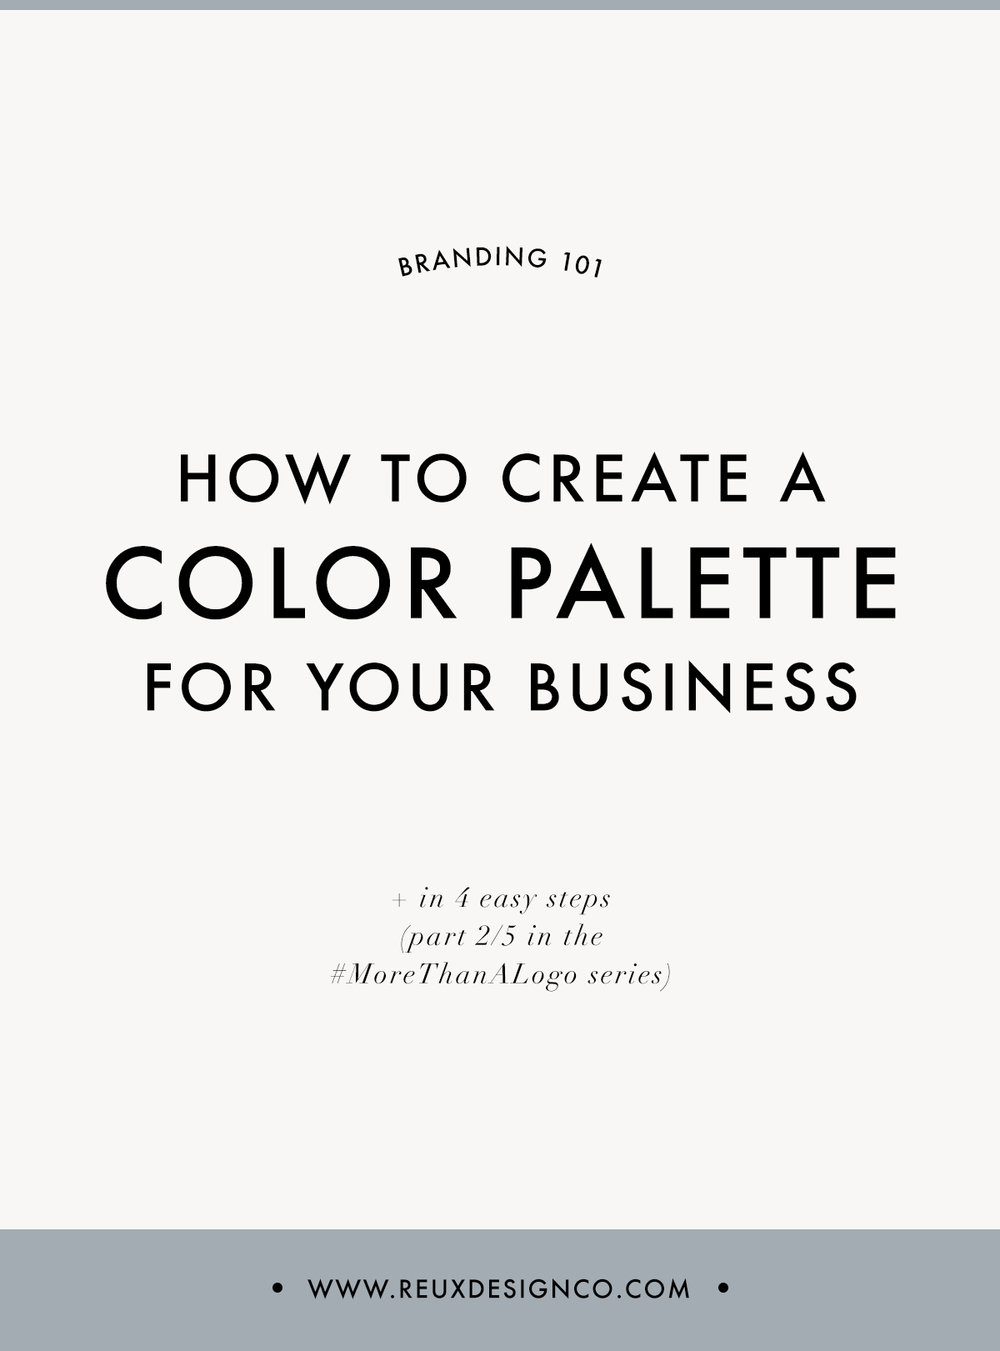 How to create a color